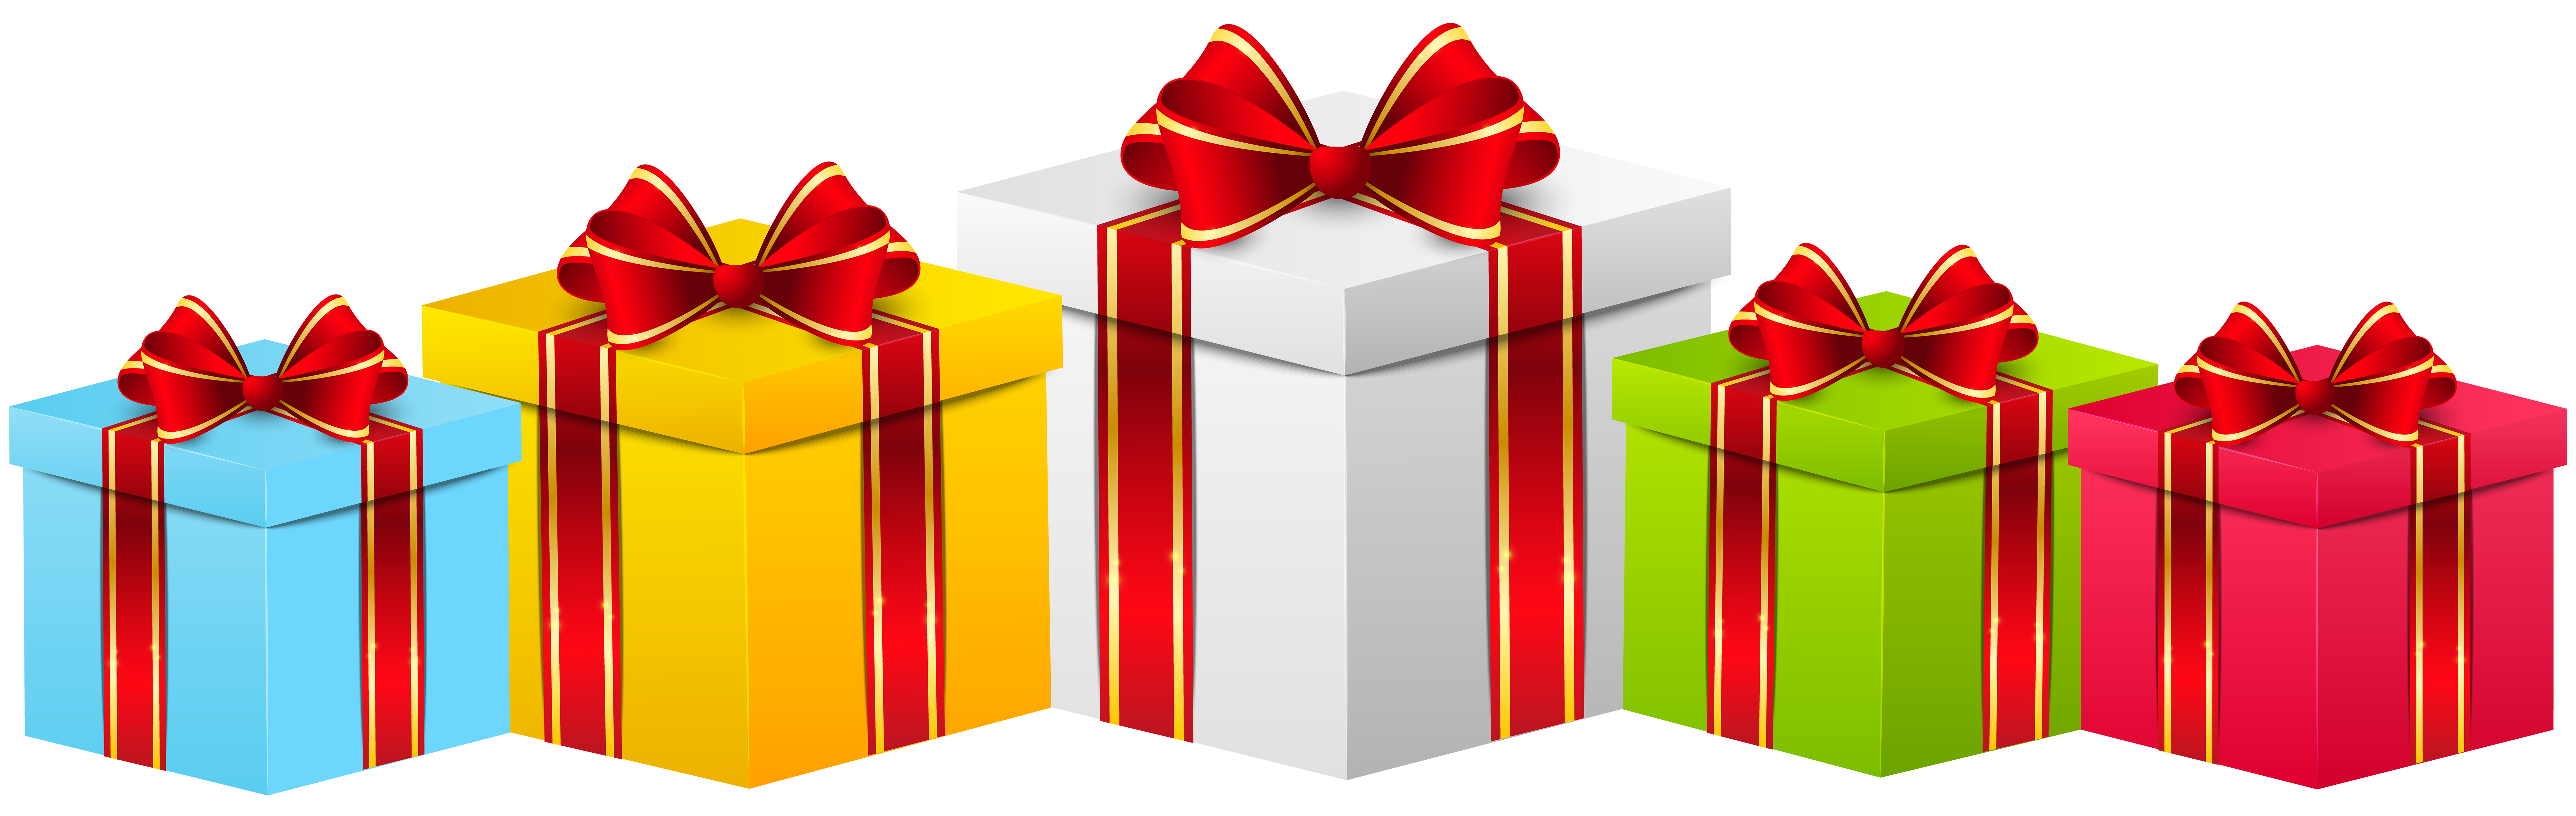 Gift Boxes Clipart | Free download on ClipArtMag